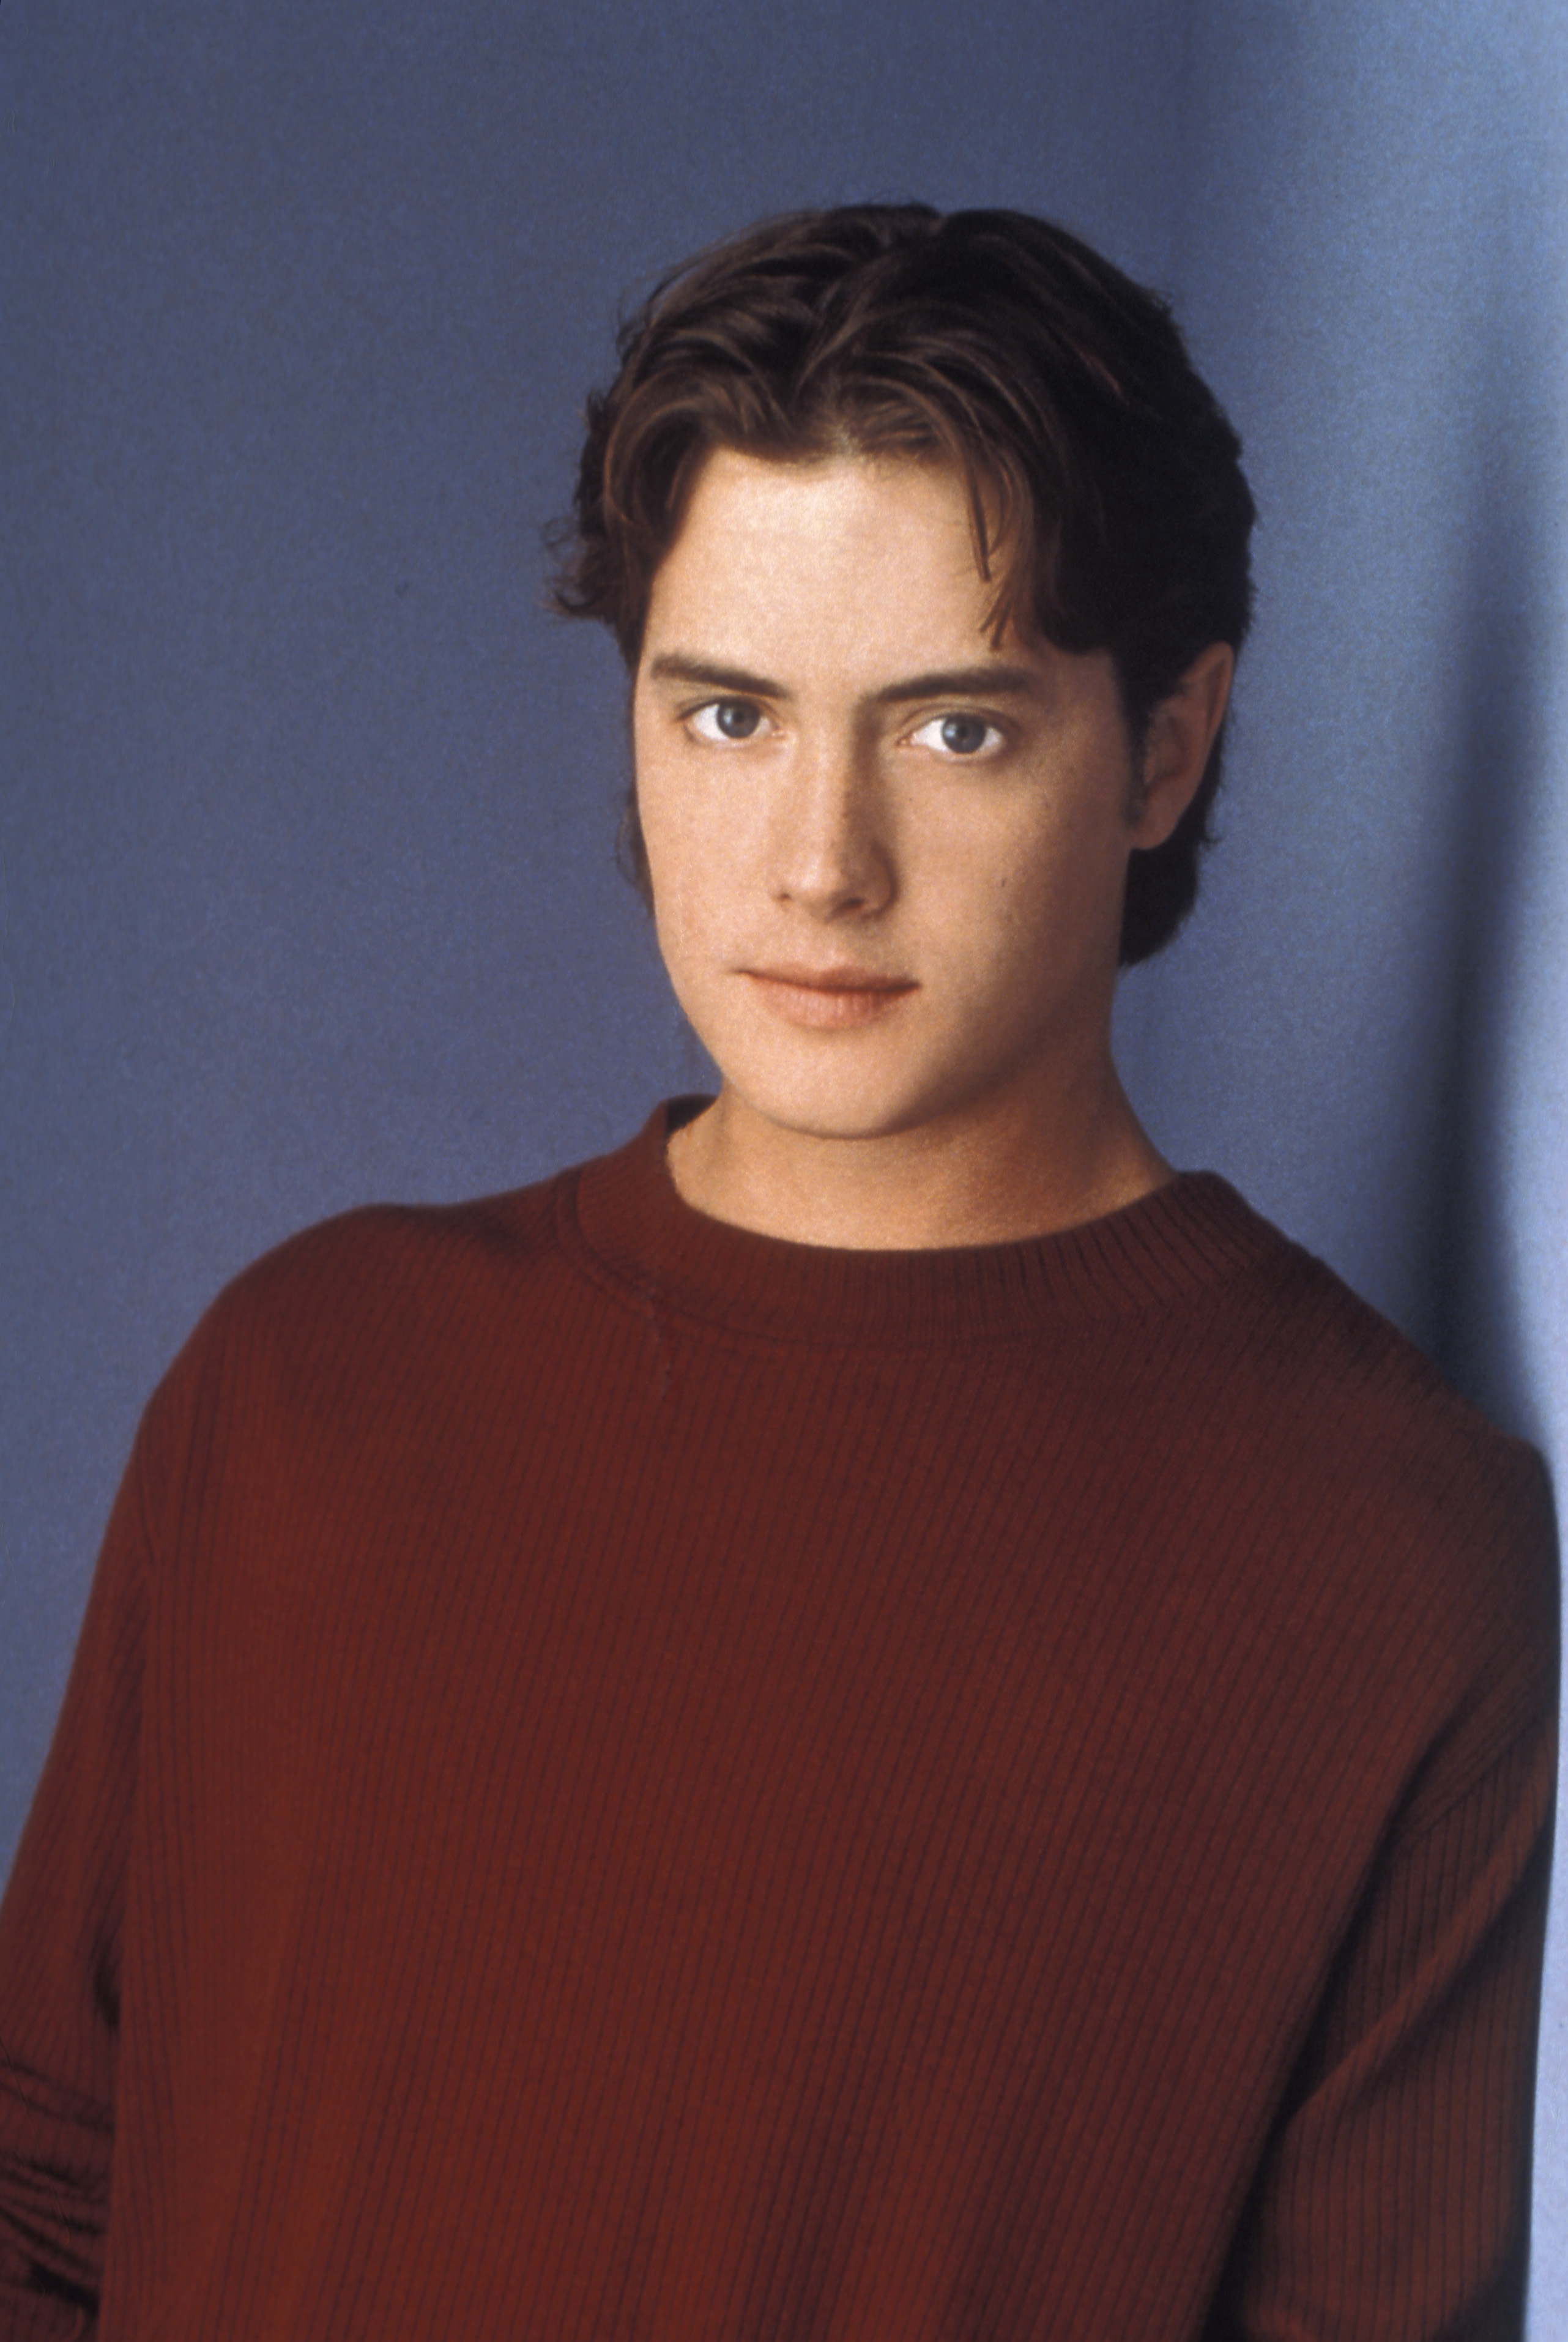 jeremy london celebrity rehab